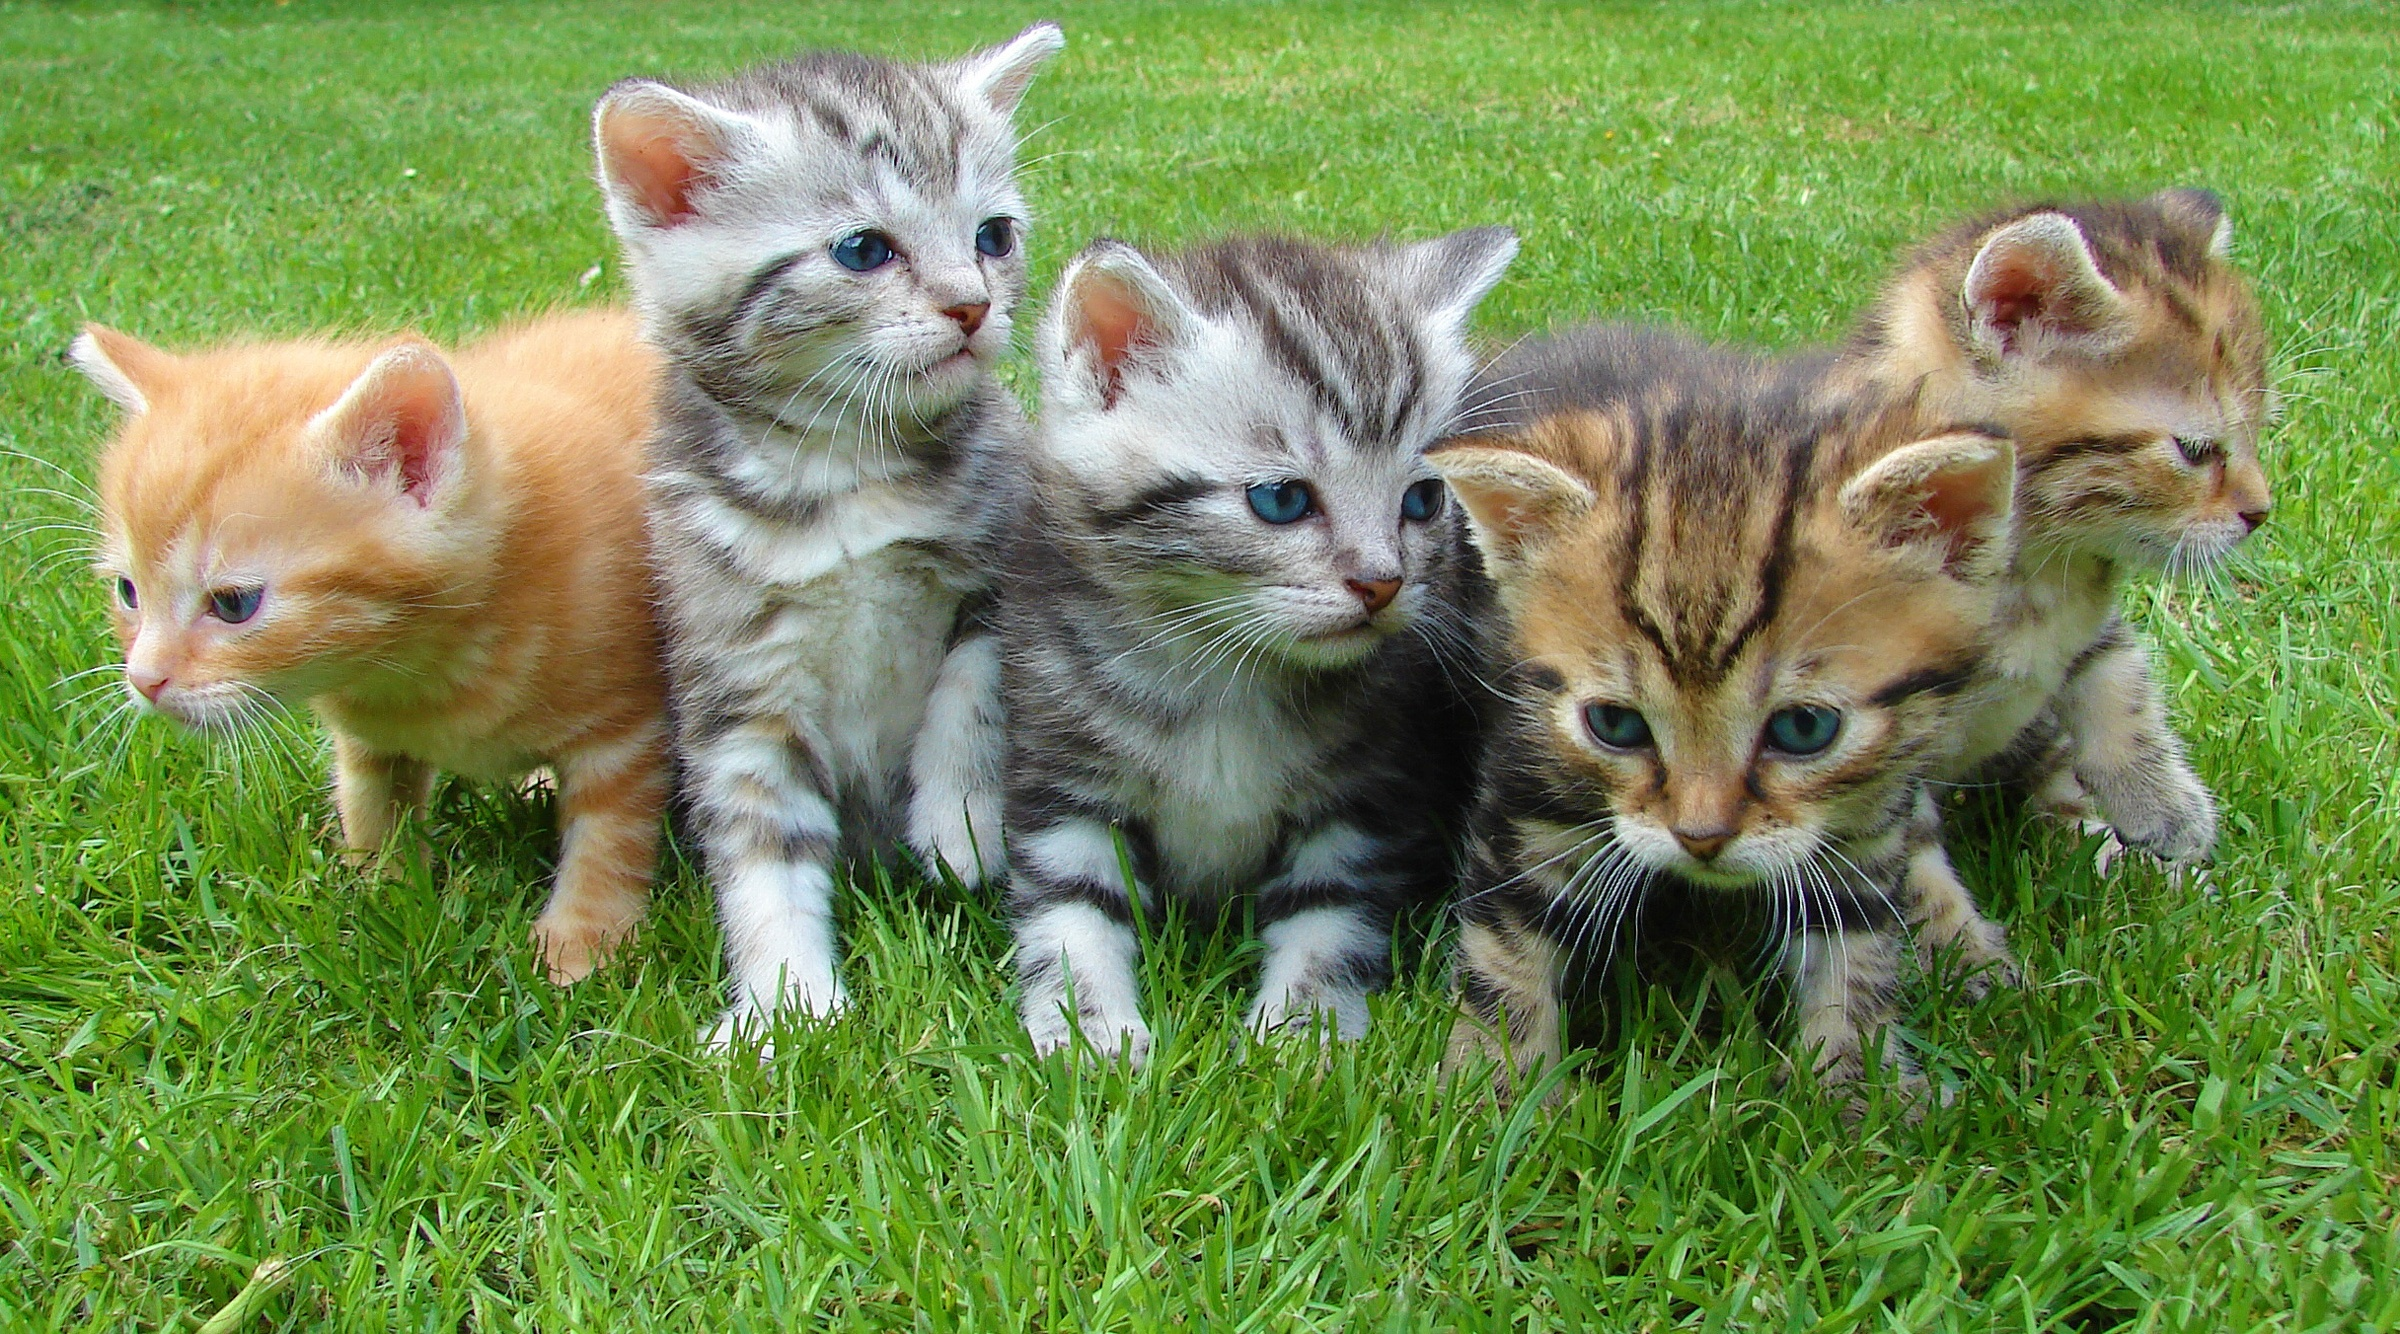 kittens-cat-cat-puppy-rush-45170.jpg